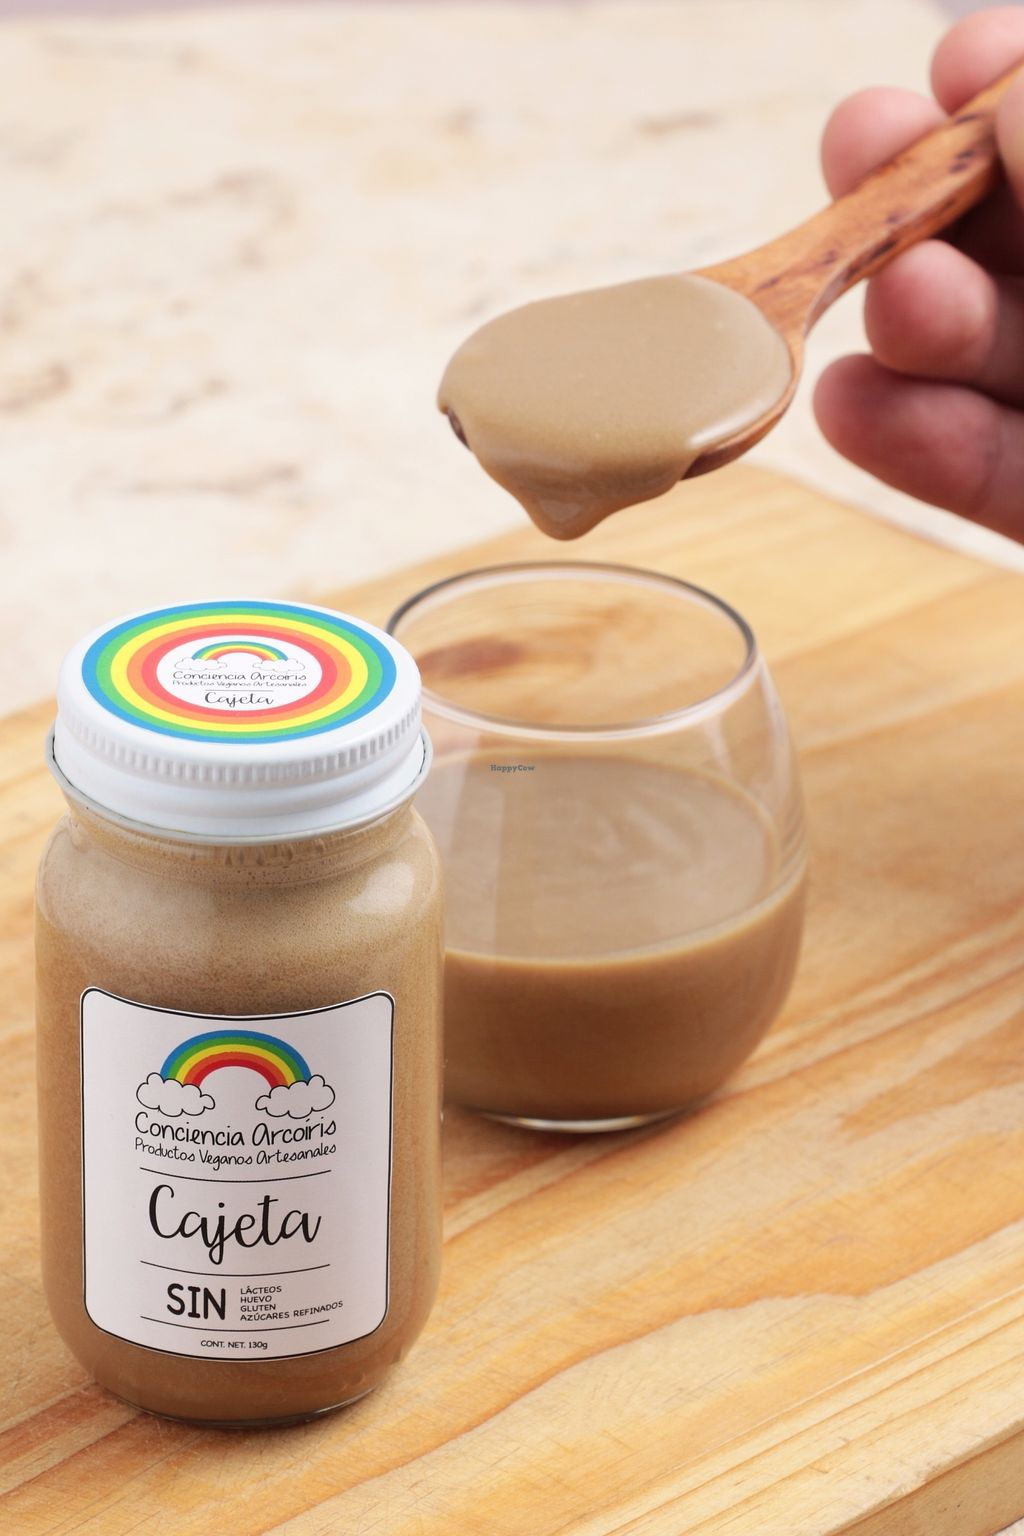 """Photo of Conciencia Arcoiris Productos Veganos Artesanales  by <a href=""""/members/profile/D%C3%A9ia%C3%81vilaFontana"""">DéiaÁvilaFontana</a> <br/>Vegan Cajeta, sweetened with brown sugar, no refined sugar added <br/> August 24, 2017  - <a href='/contact/abuse/image/99214/296758'>Report</a>"""